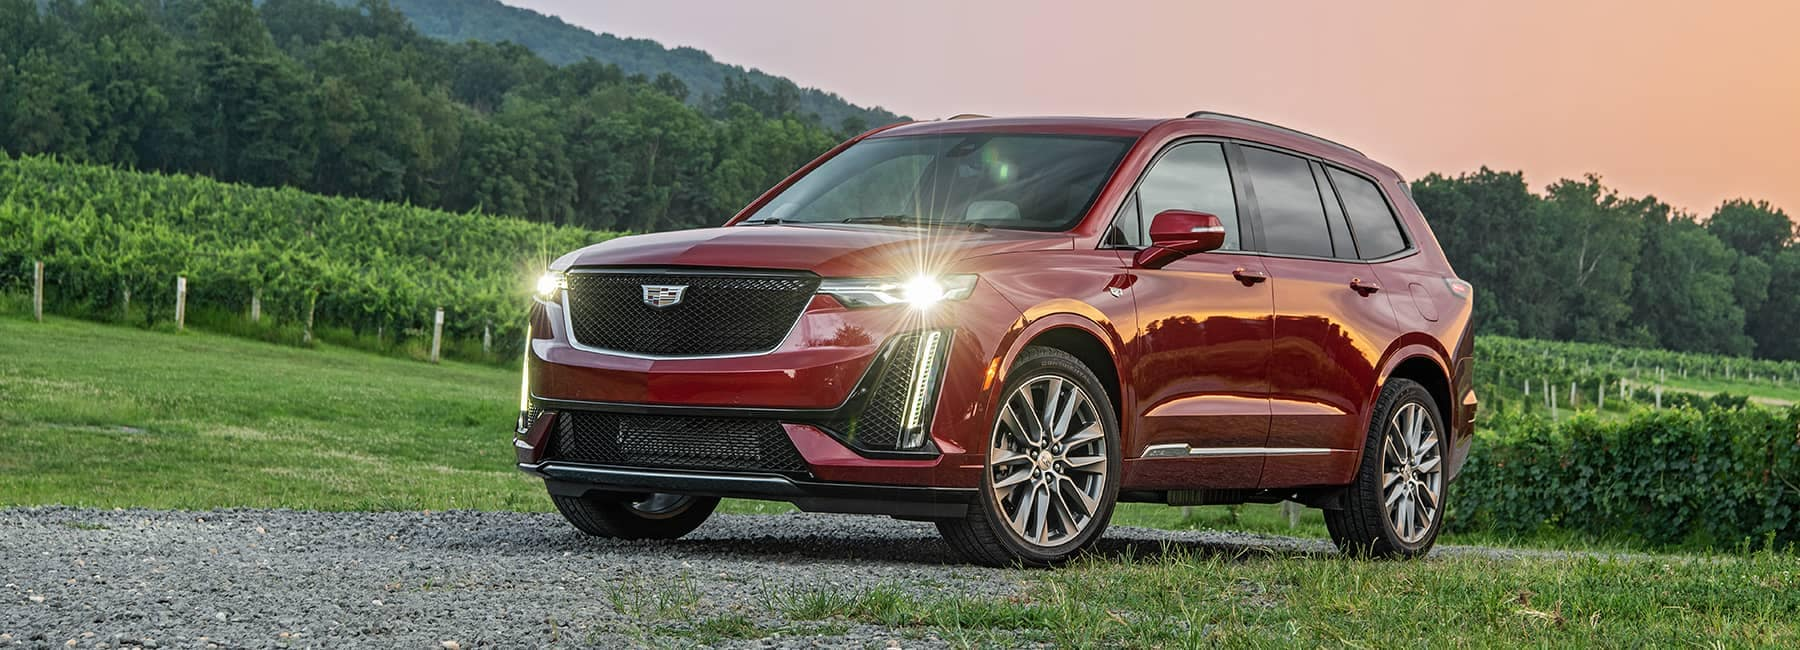 Red Cadillac XT6 Parked on a dirt road at dusk